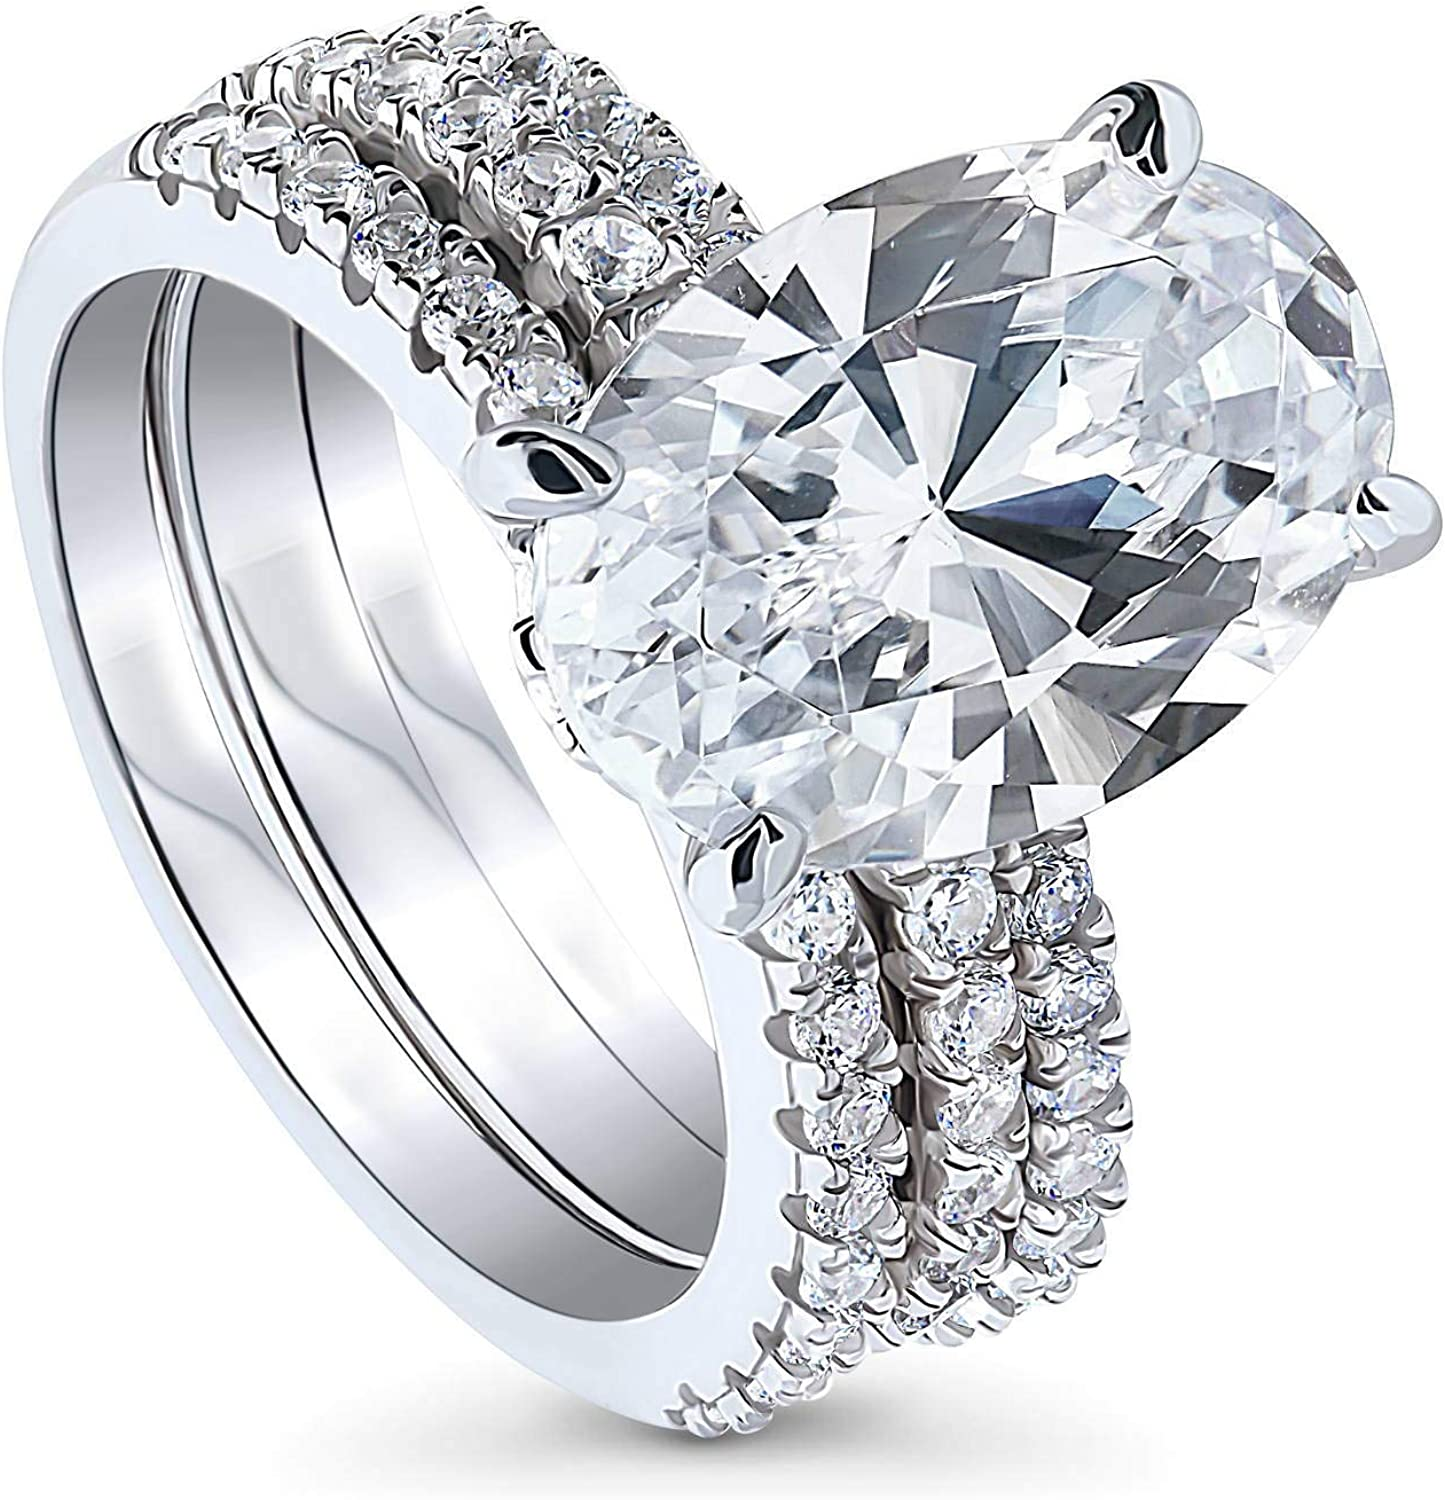 BERRICLE Seasonal Wrap Introduction Rhodium Plated Sterling Silver Cut Max 77% OFF Cubic Zirconia Oval